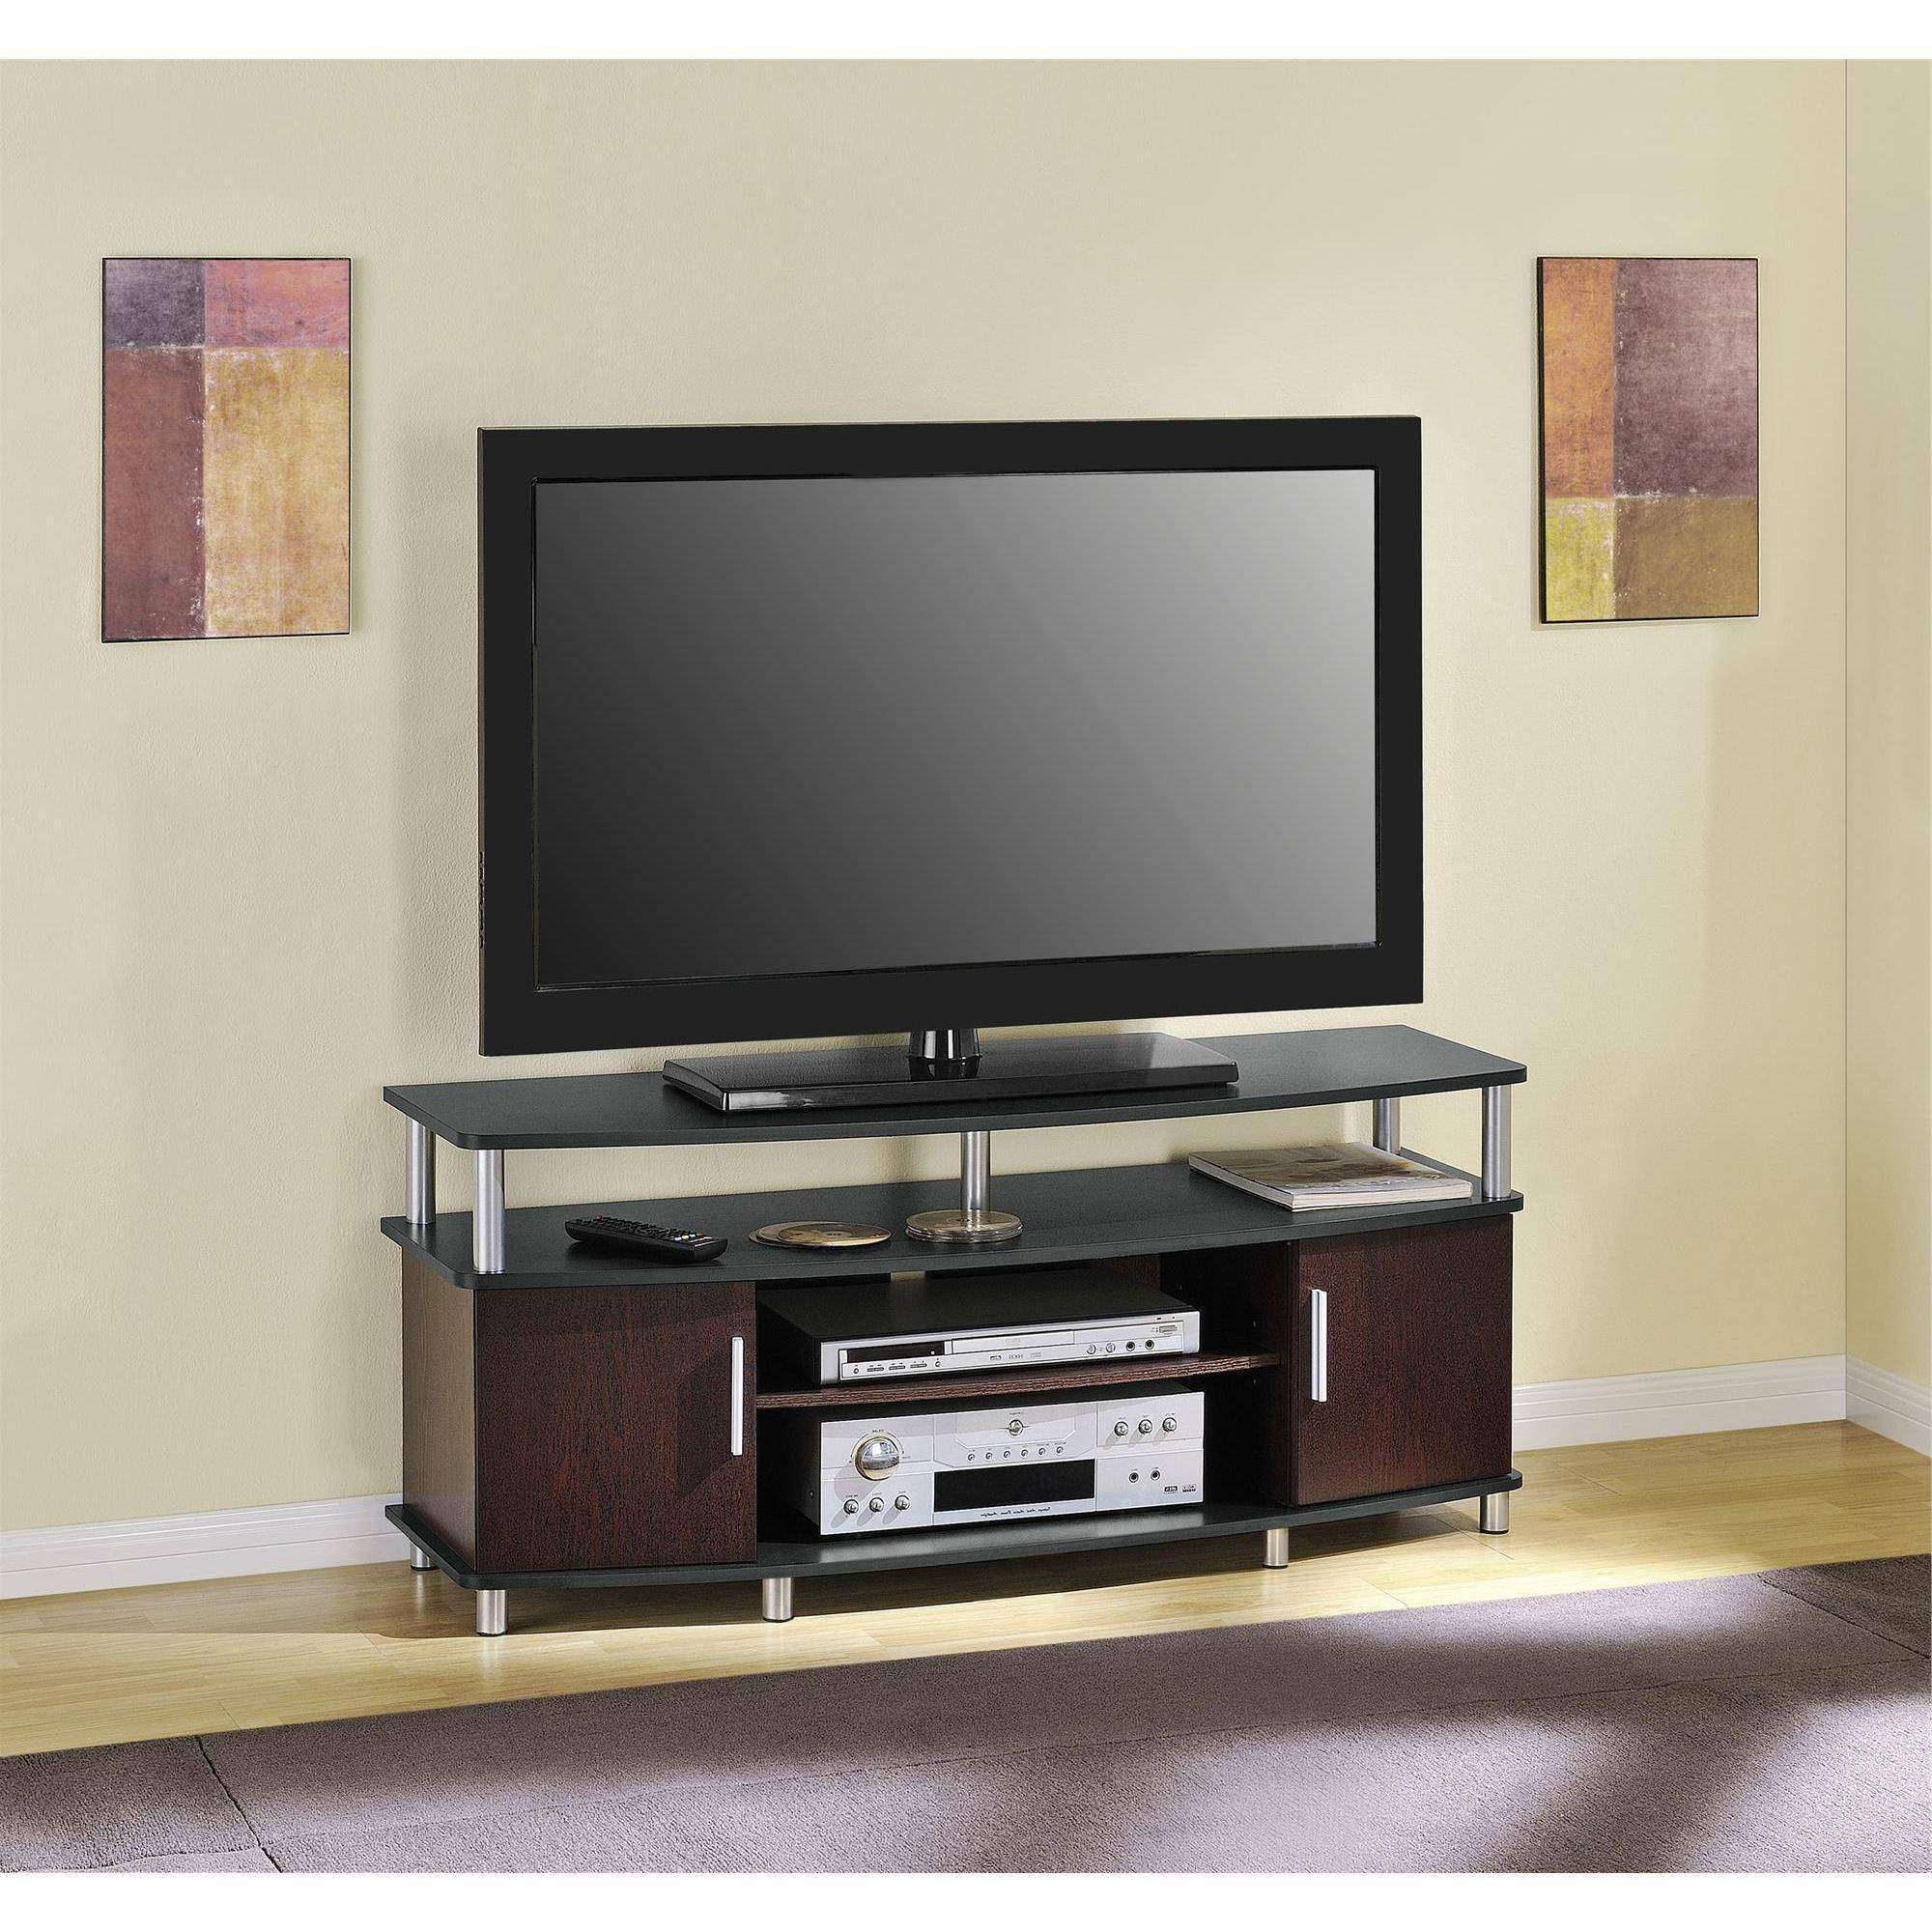 Tv : Rustic 60 Inch Tv Stands Dramatic Rustic 60 Inch Tv Stands Regarding Rustic 60 Inch Tv Stands (View 10 of 15)